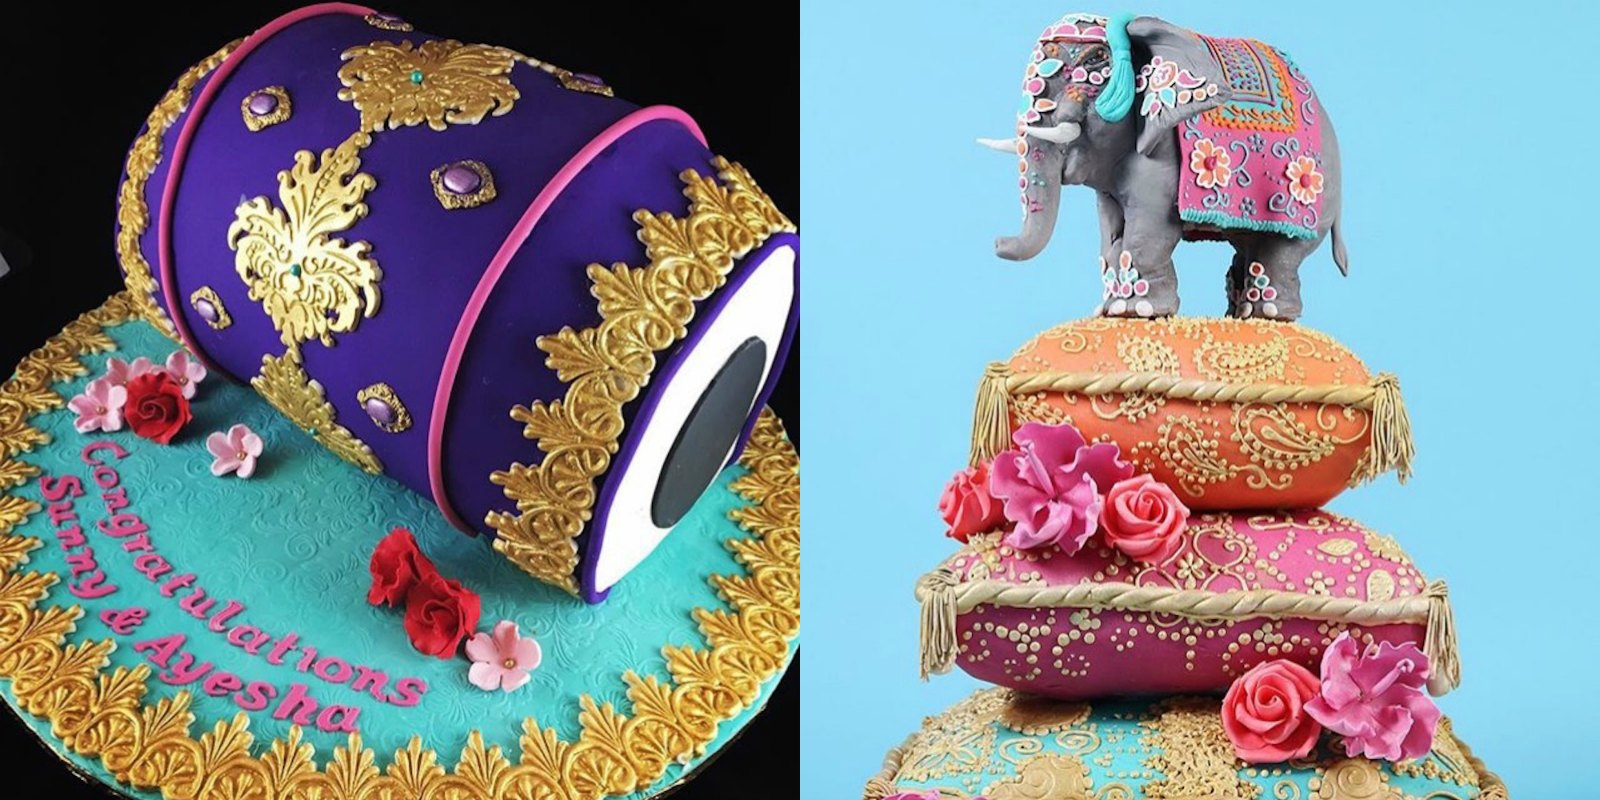 Indian Wedding Cakes- Price, Types, and Other Details